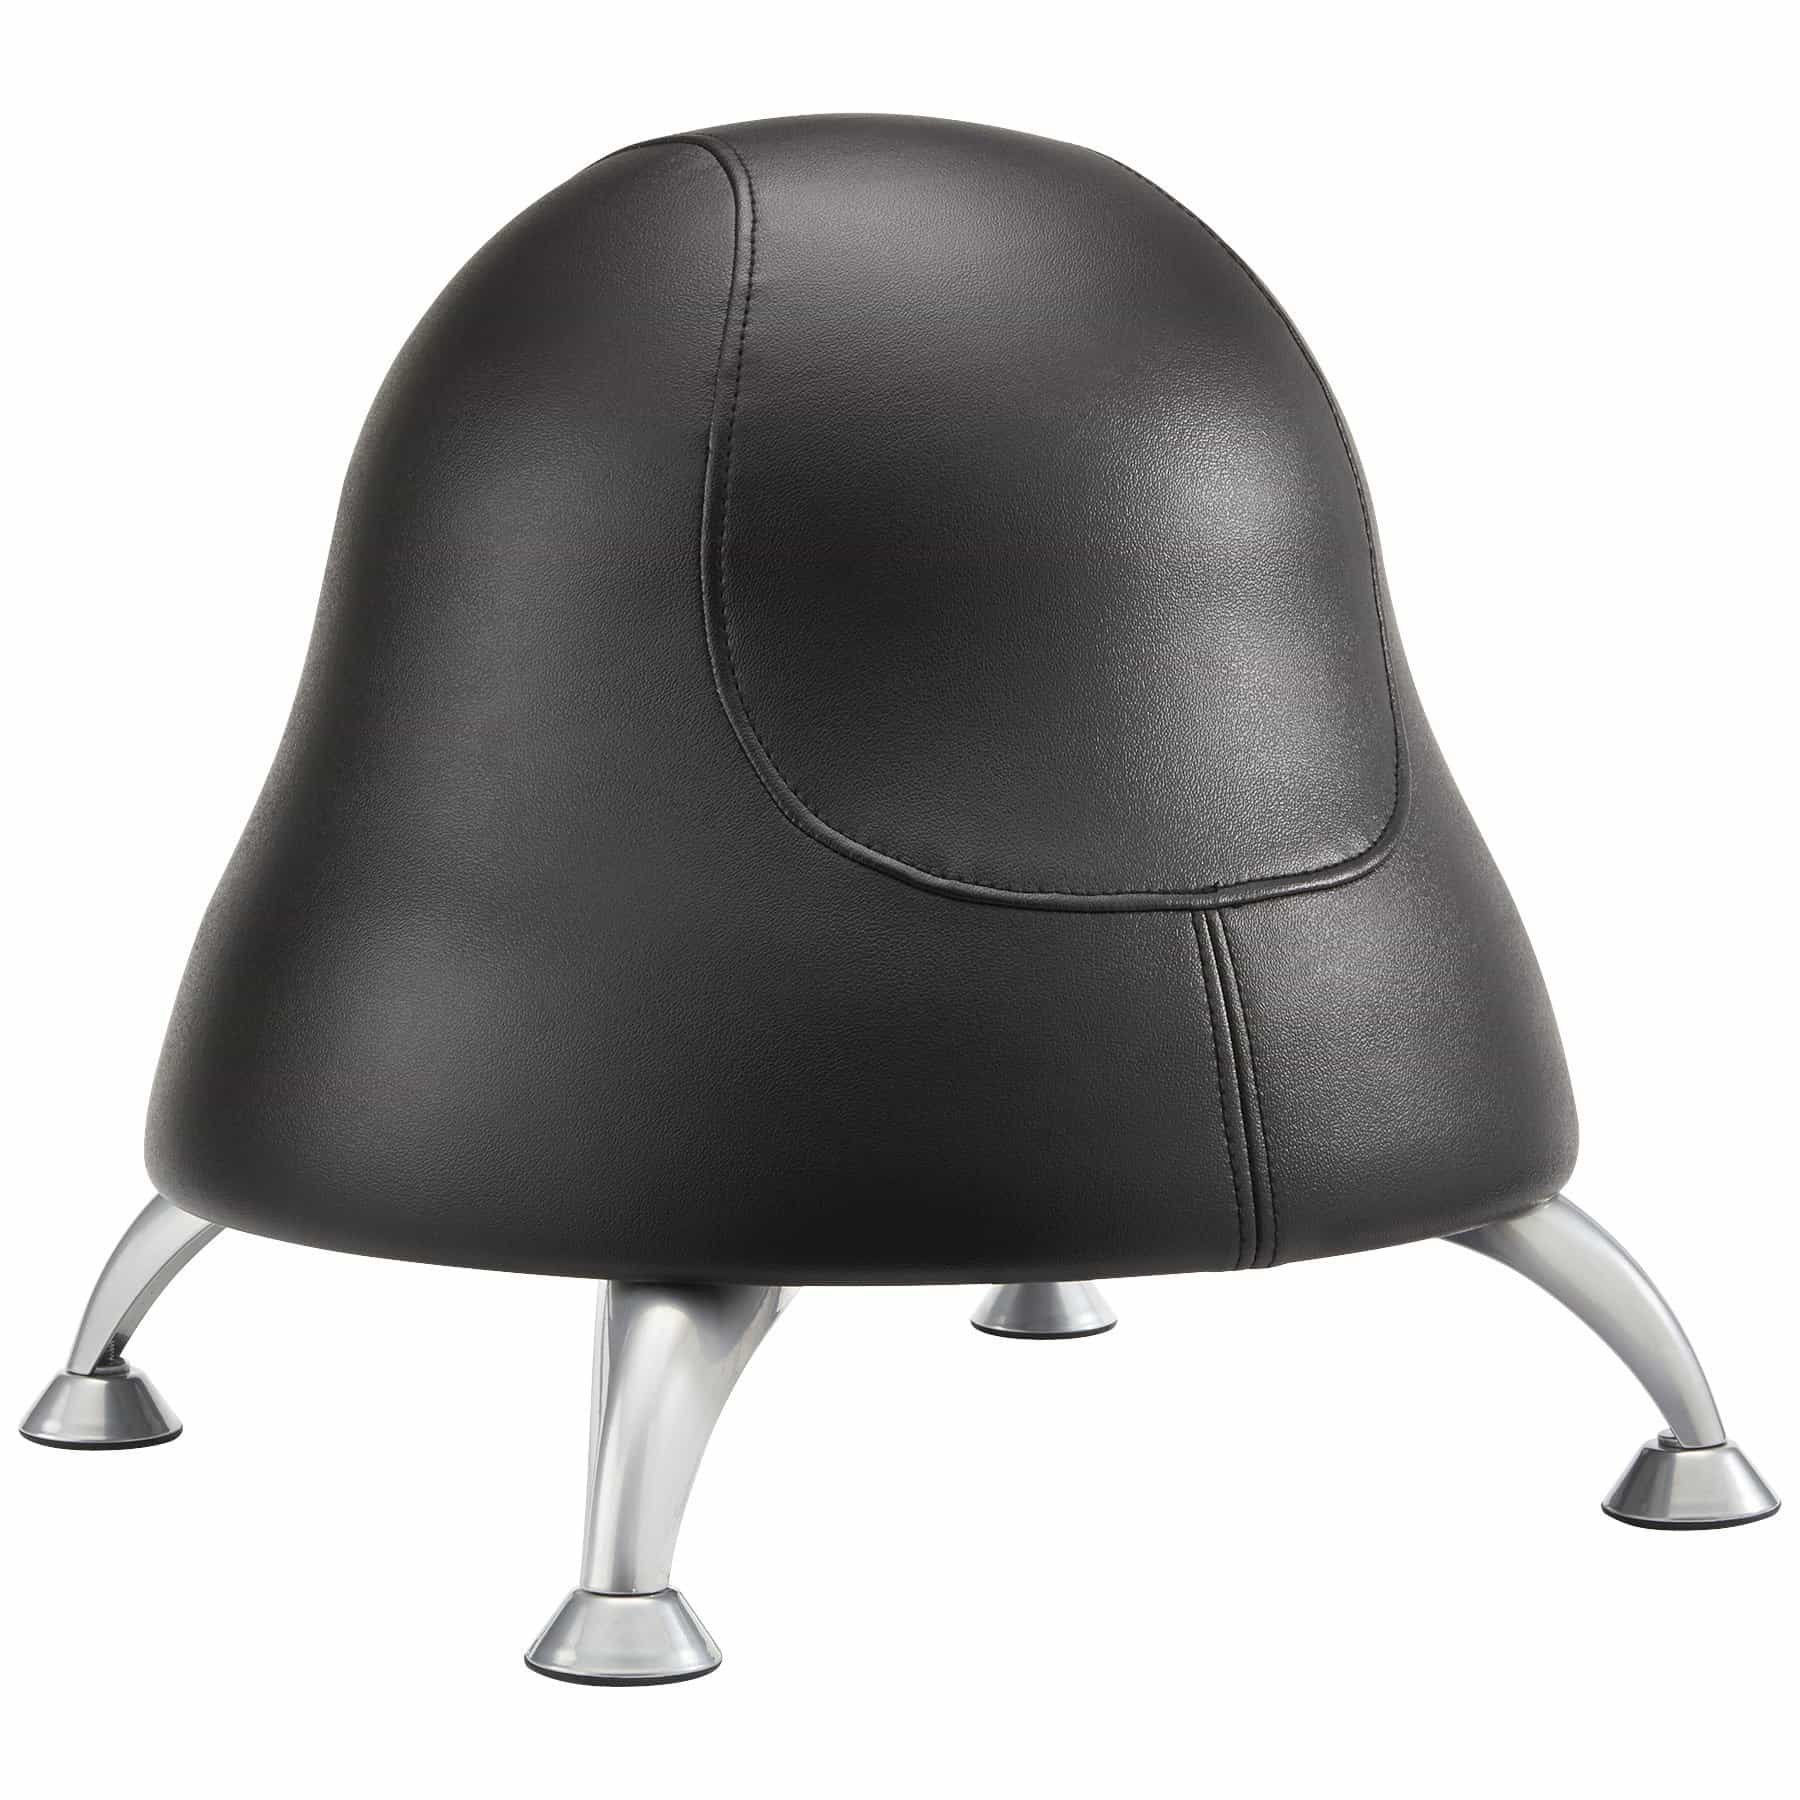 bedinhome - 4756BV Safco Black Runtz four legs vinyl fabric covered Ball Chair - Safco - Specialty Seating